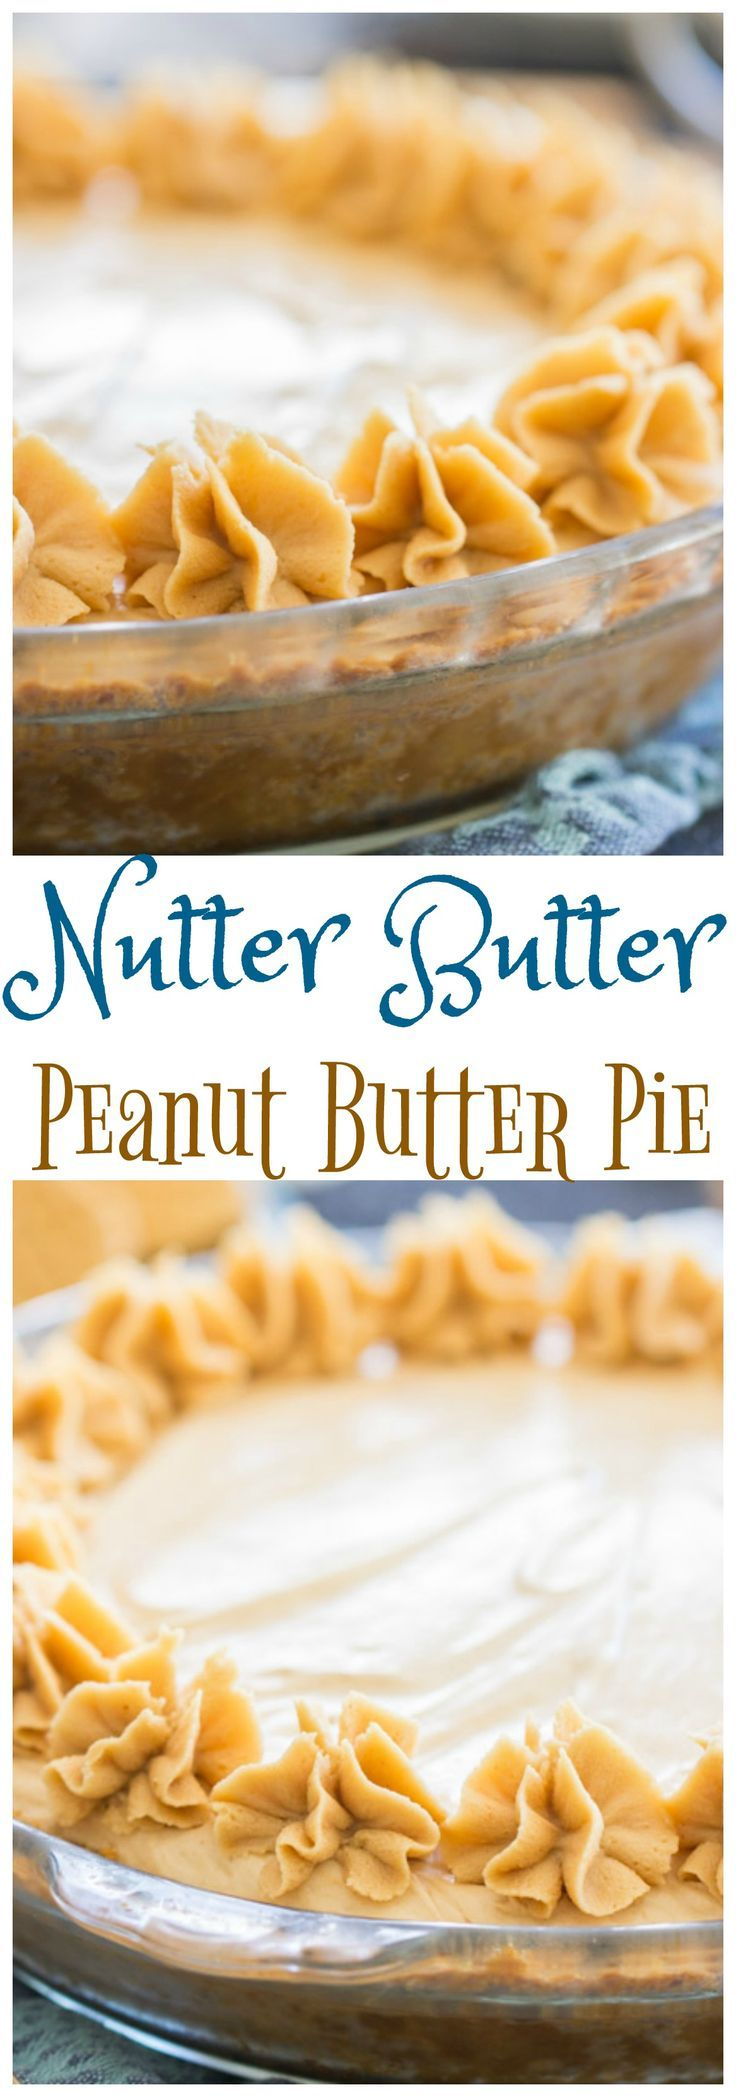 Nutter Butter Peanut Butter Pie pin 2